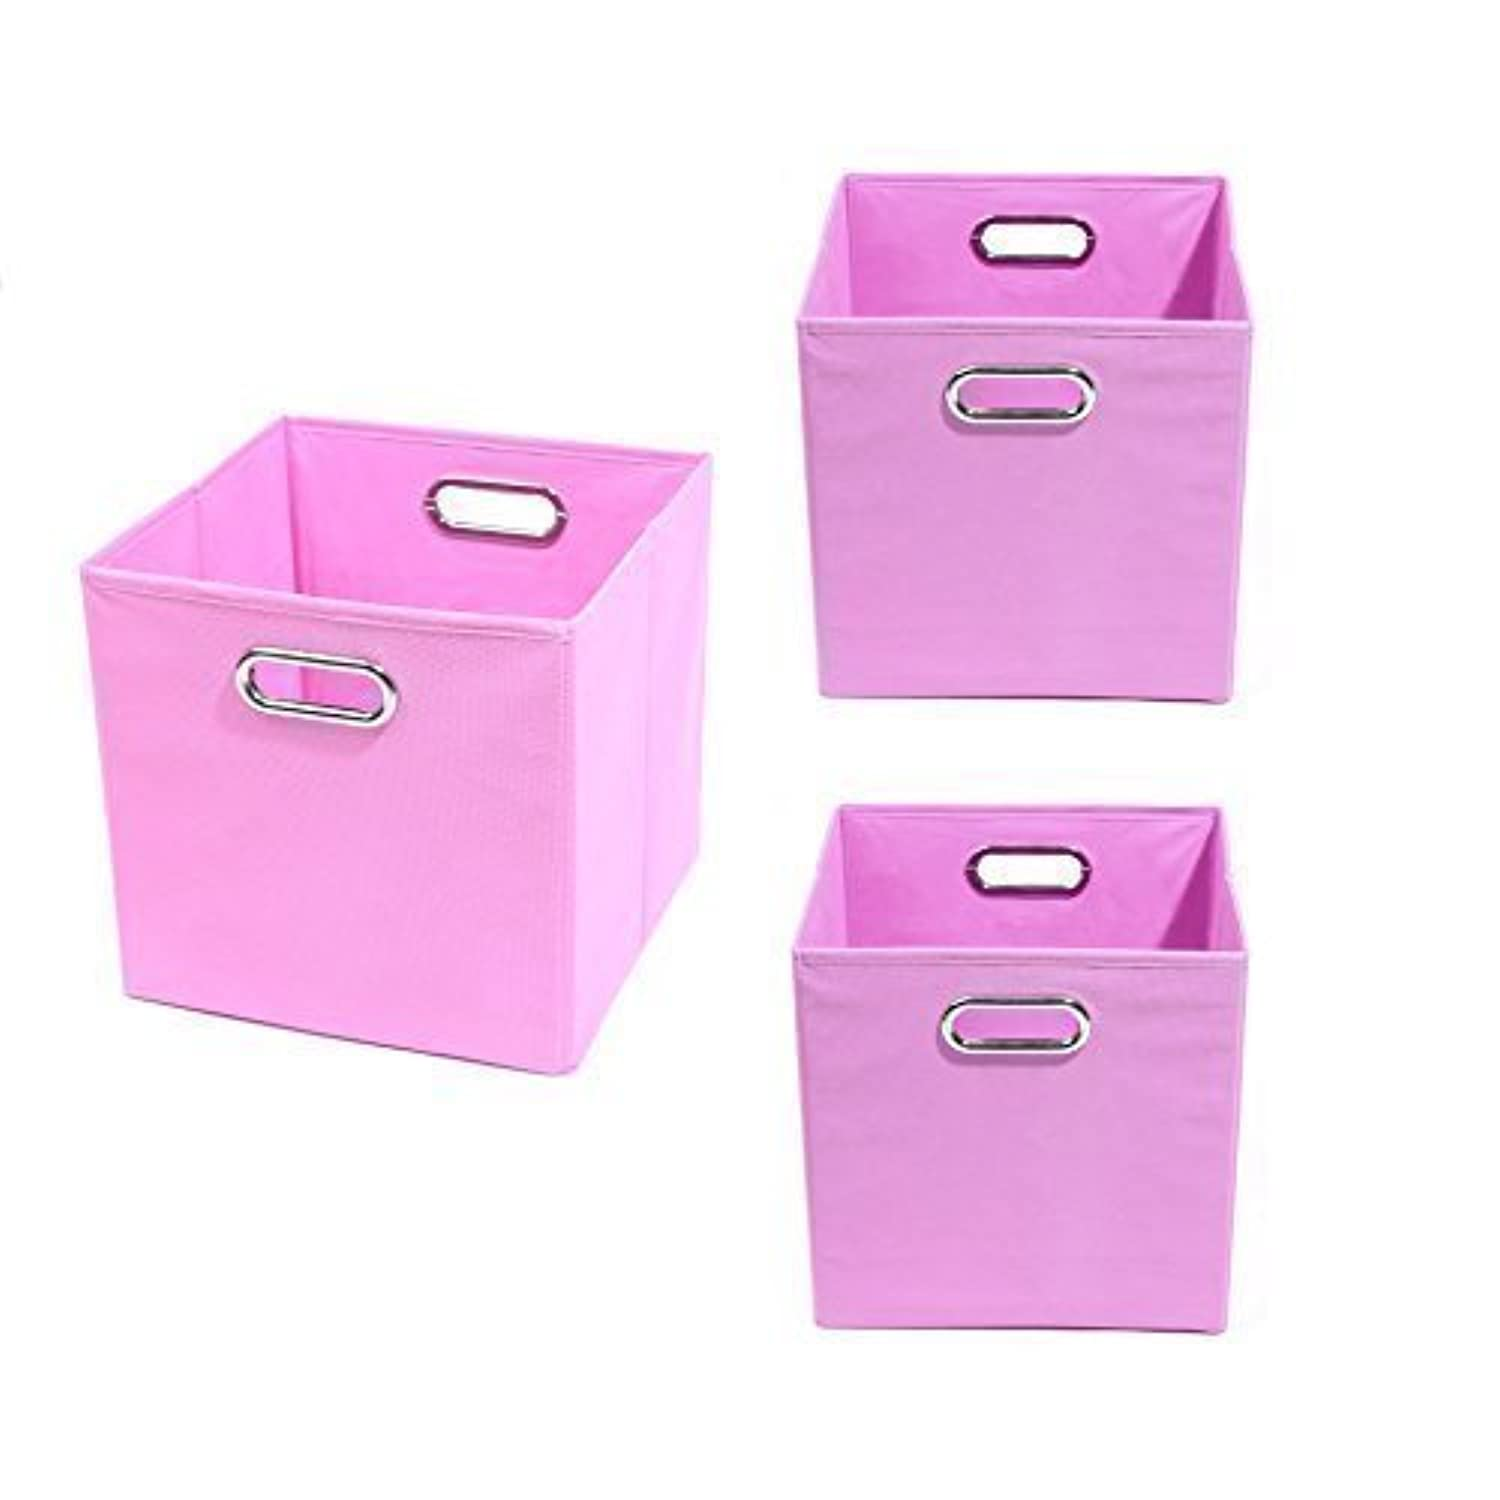 Modern Littles Organization Bundle-3 Storage Bins, Rose Pink by Modern Littles [並行輸入品]